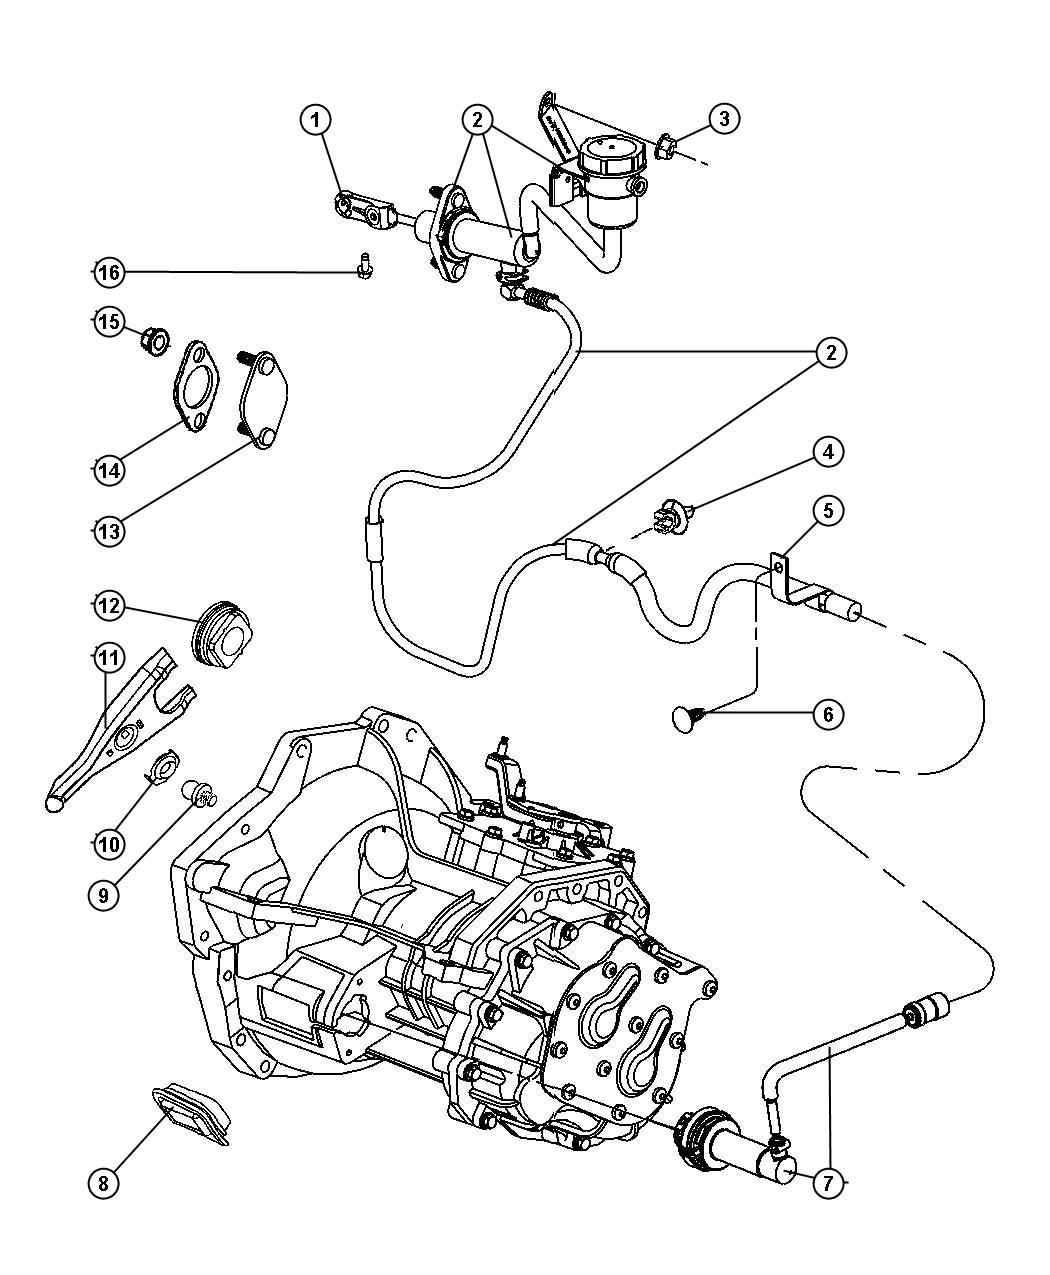 Dodge Neon Front Suspension Diagram Wiring Diagrams